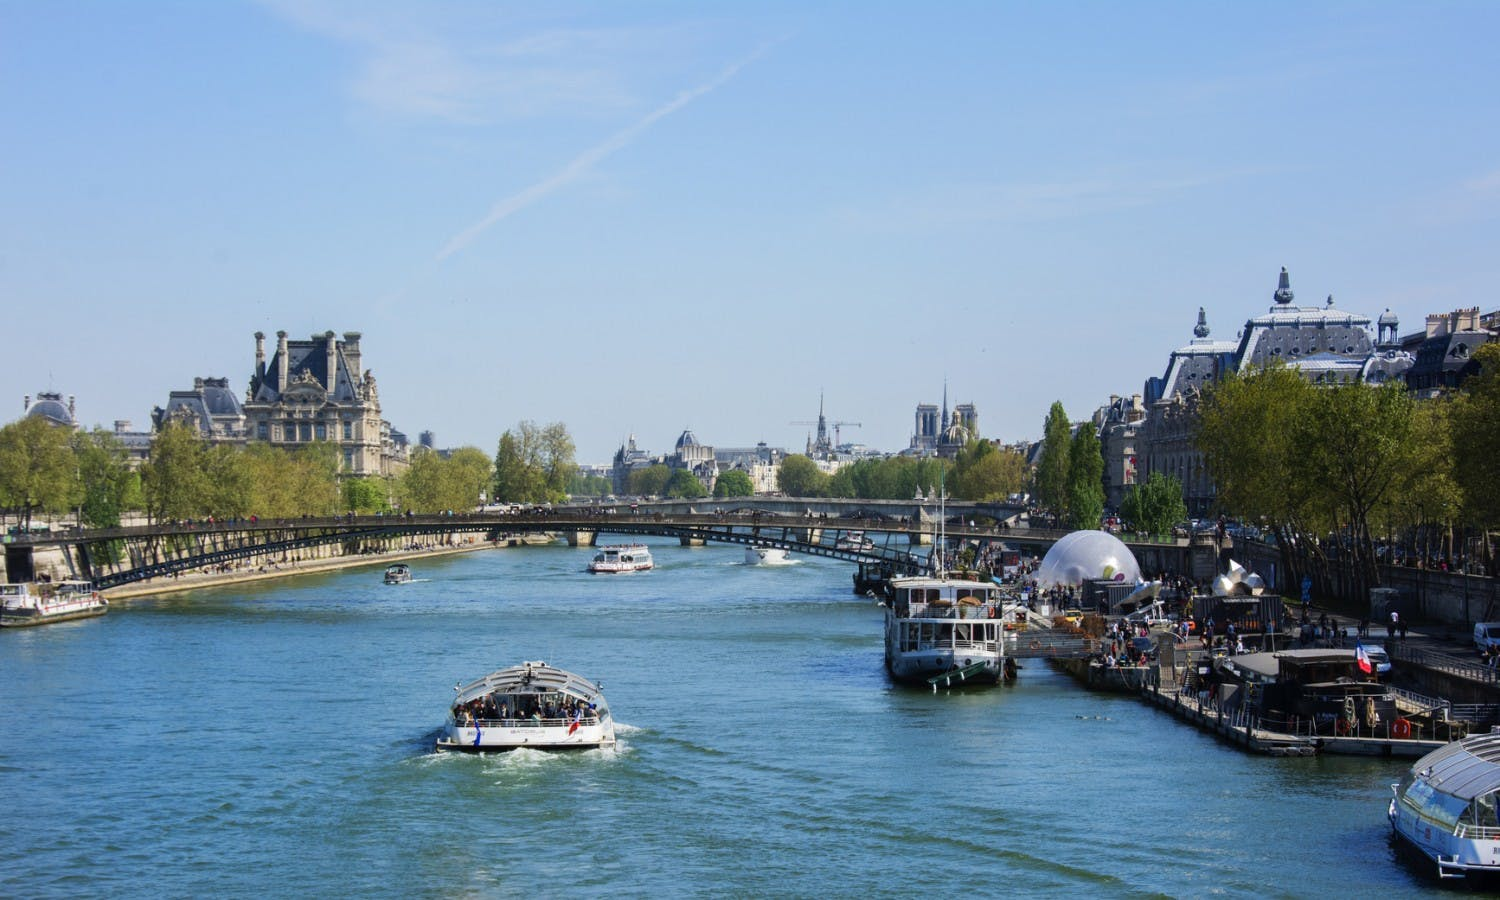 Paris Up&Down: City Tour, Skip the Line Tickets to the Eiffel Tower and Seine Cruise